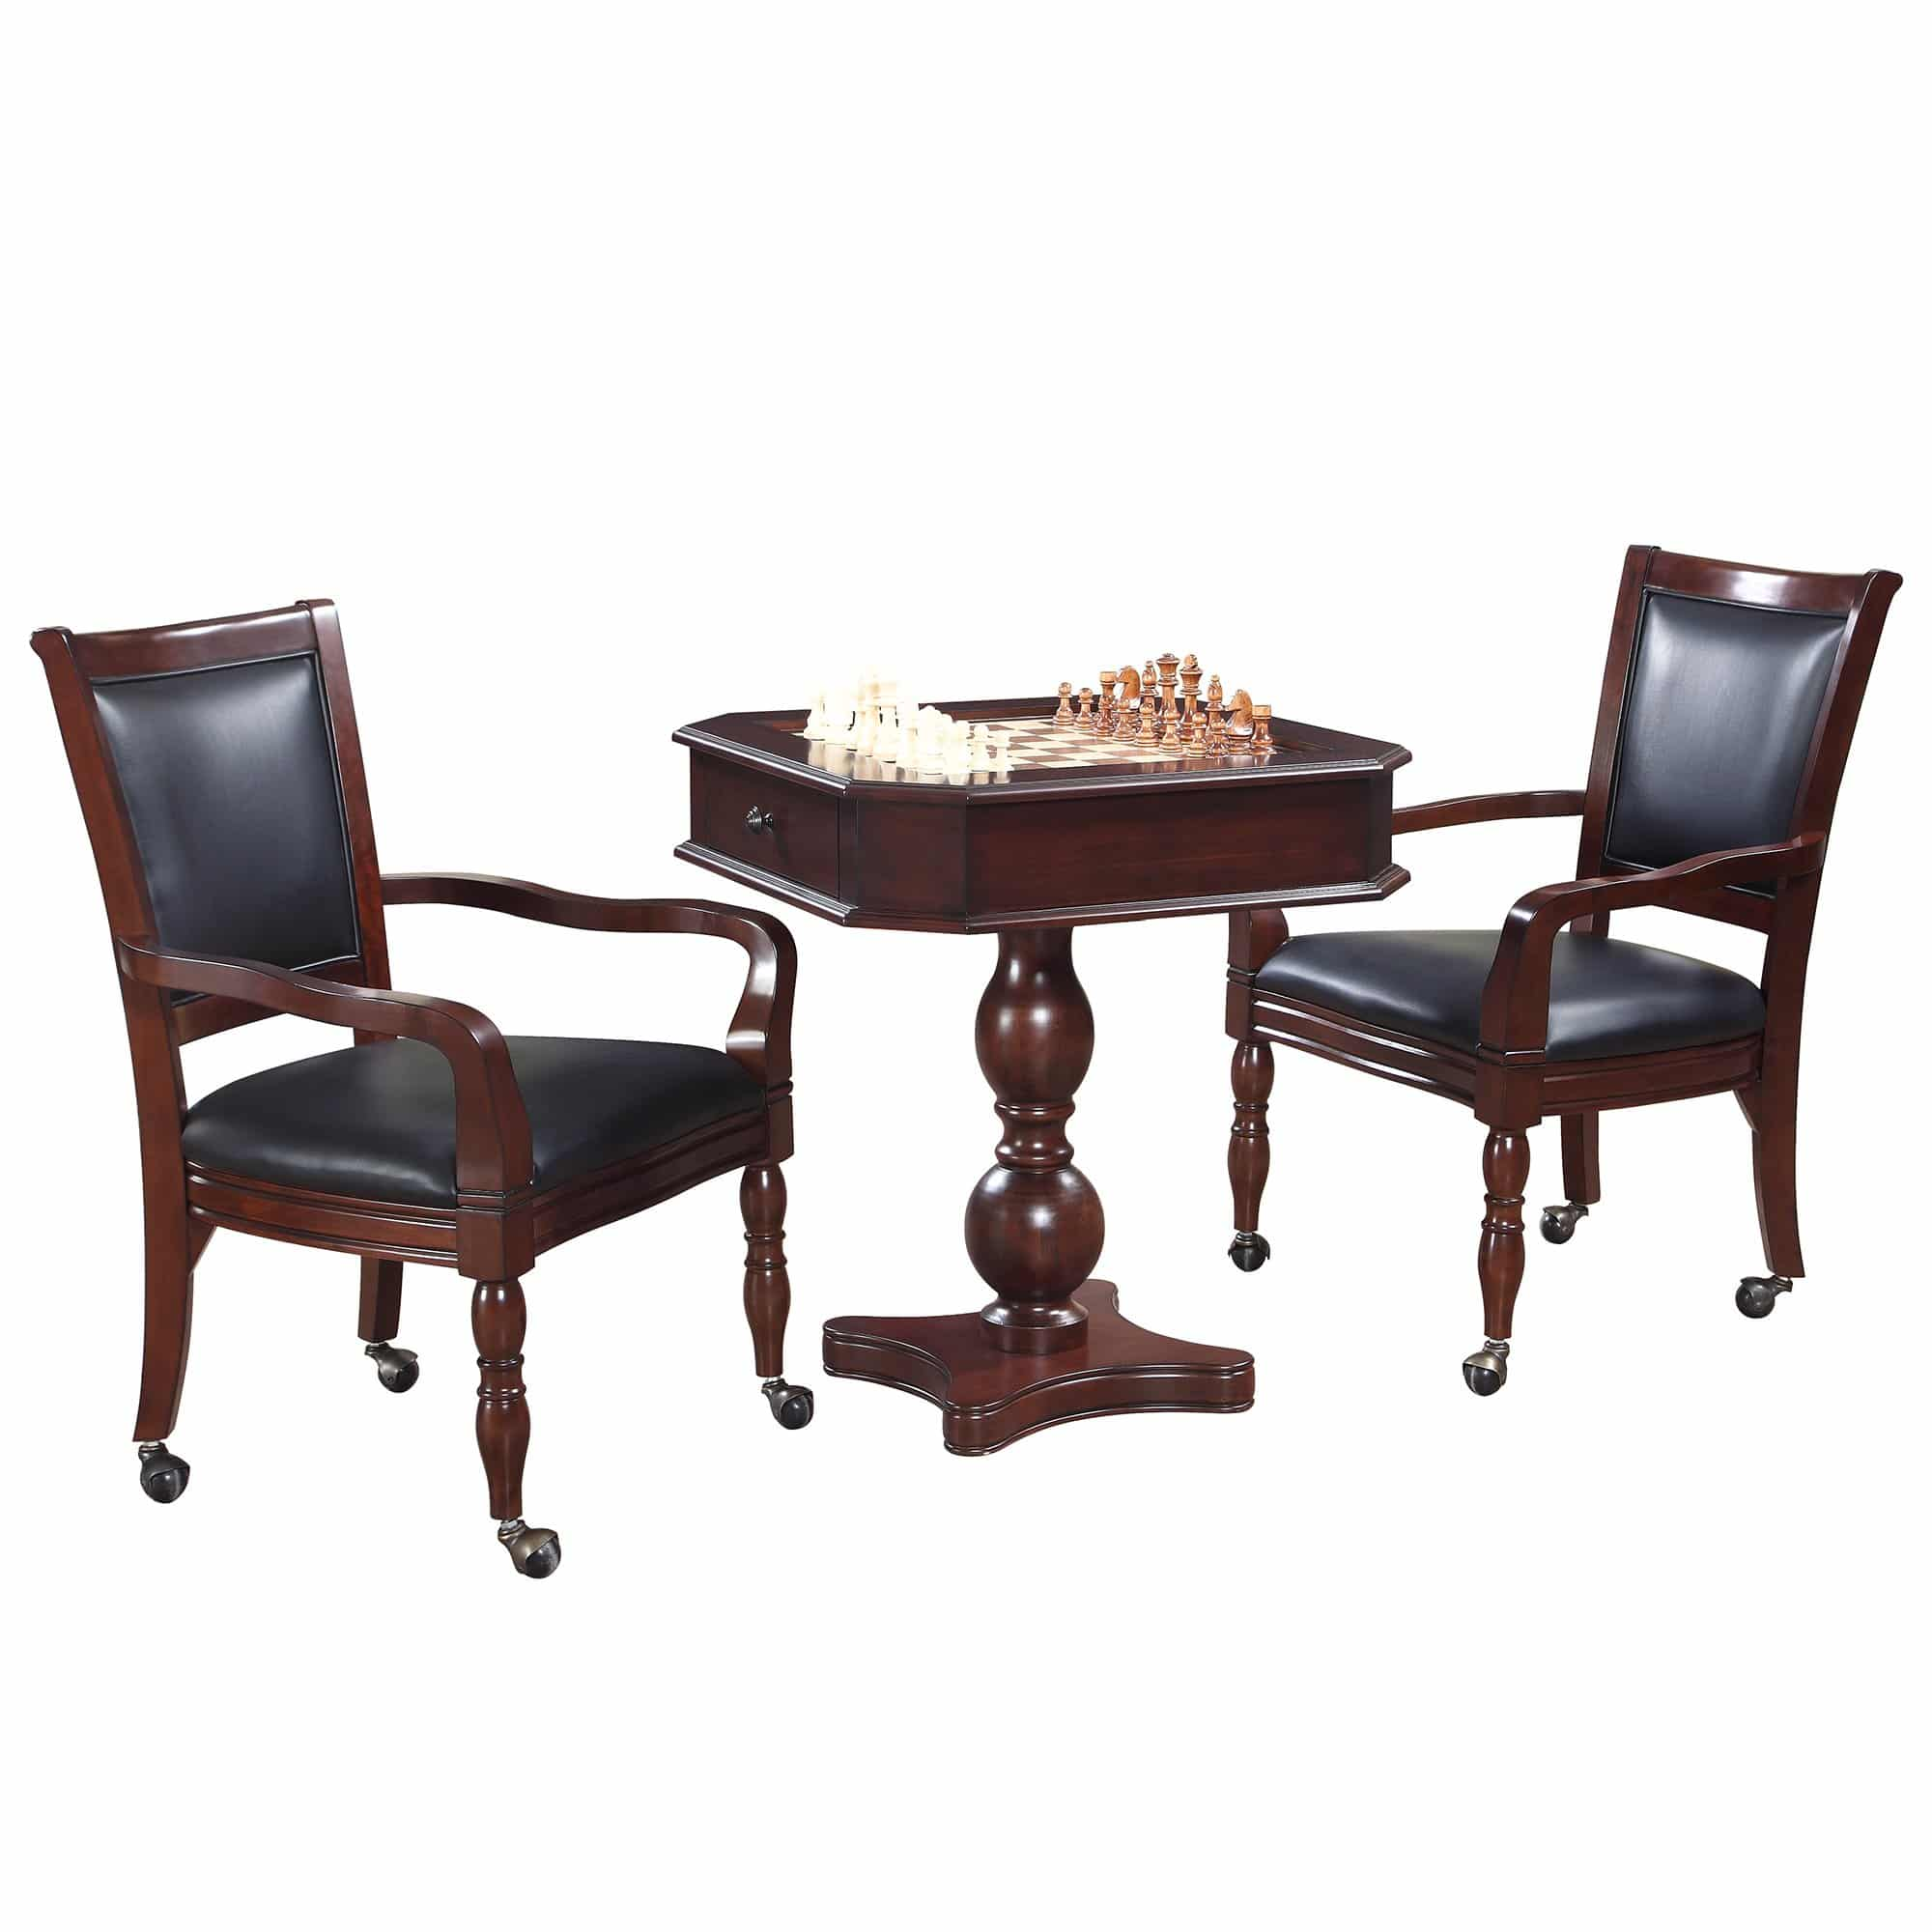 chess table and chairs desk chair homesense fortress checkers backgammon pedestal game